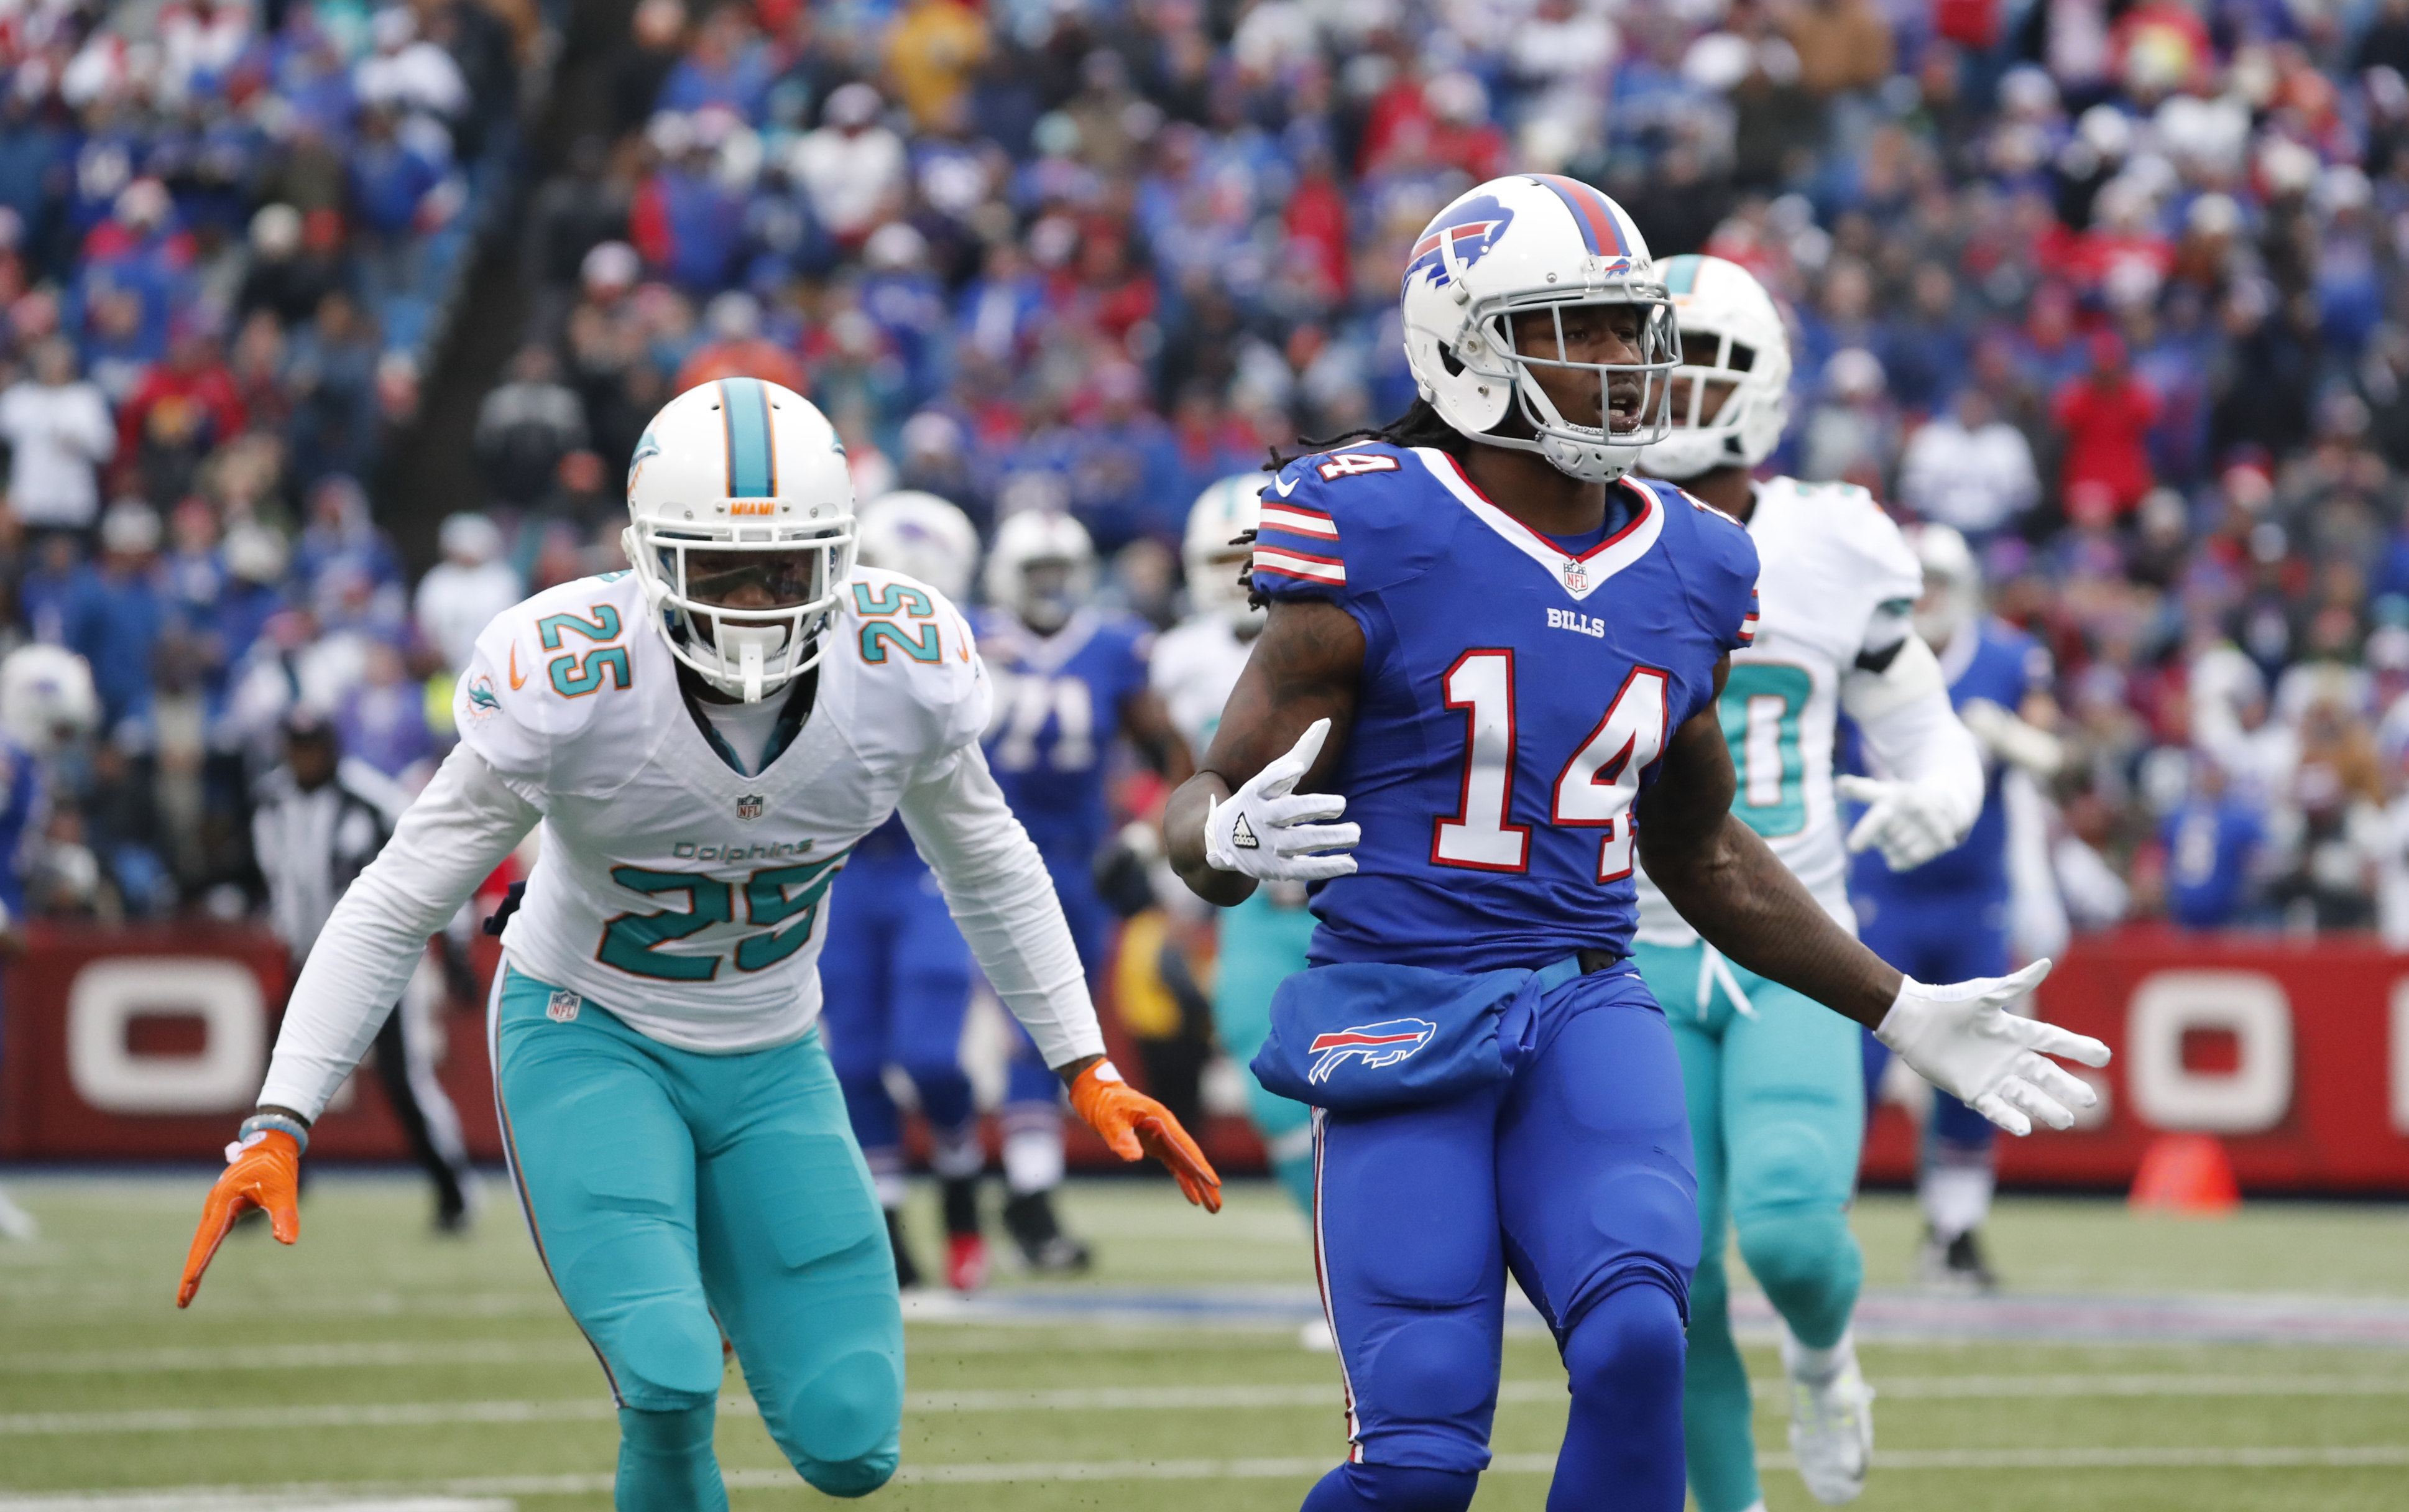 Buffalo Bills receiver Sammy Watkins gestures after a ball is thrown behind him. (Harry Scull Jr./Buffalo News)